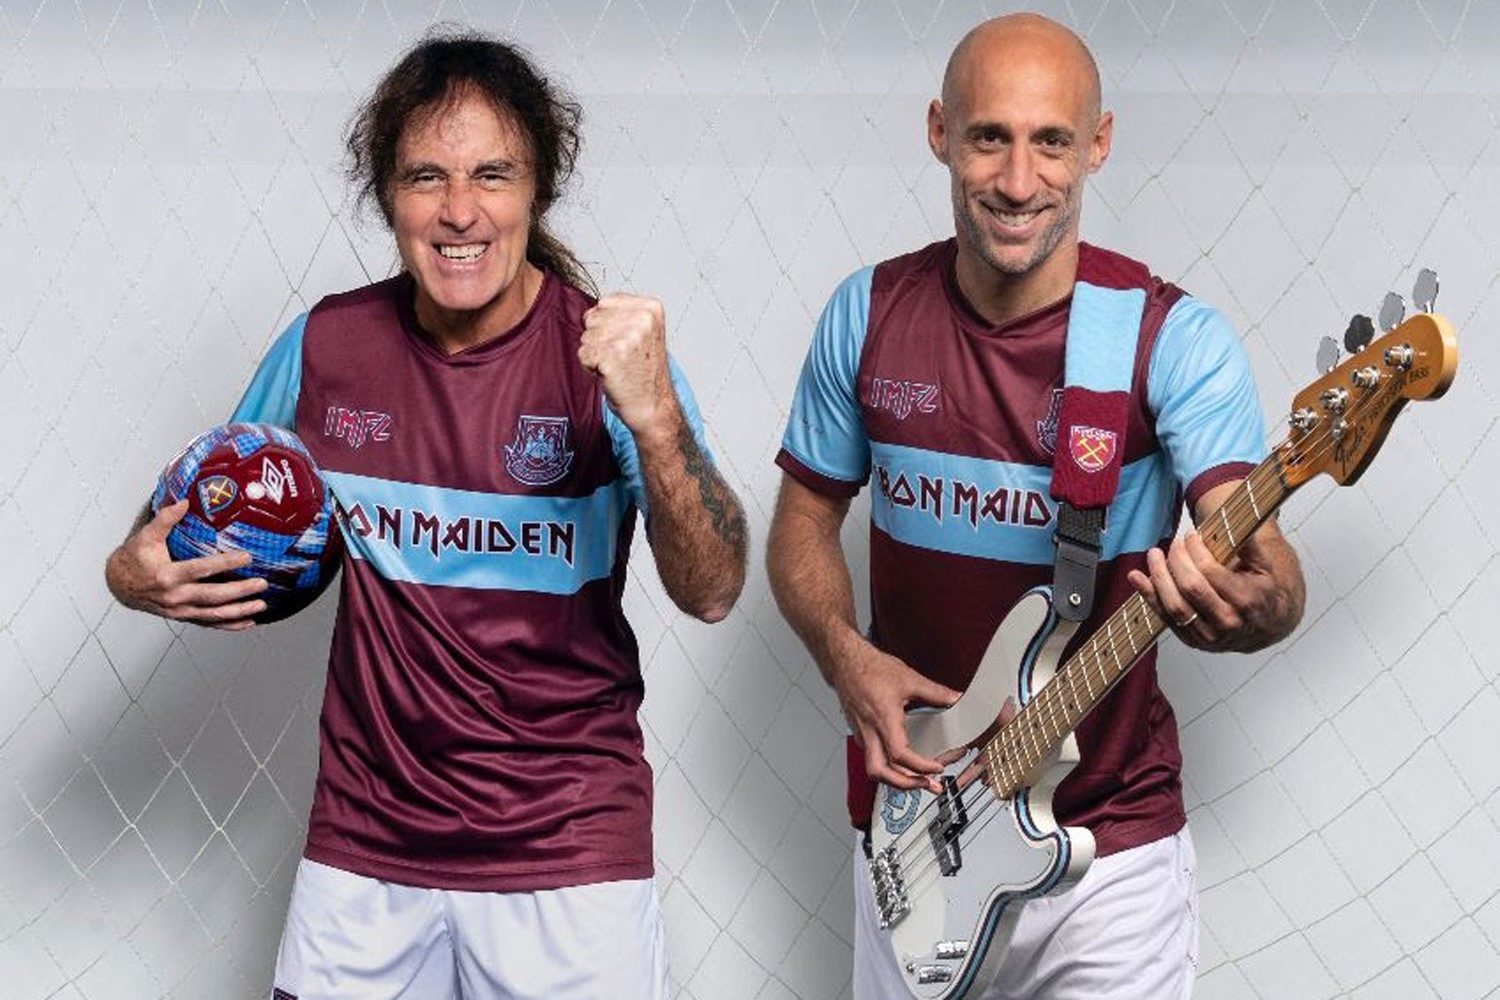 Iron Maiden have teamed up with West Ham United for a new kit